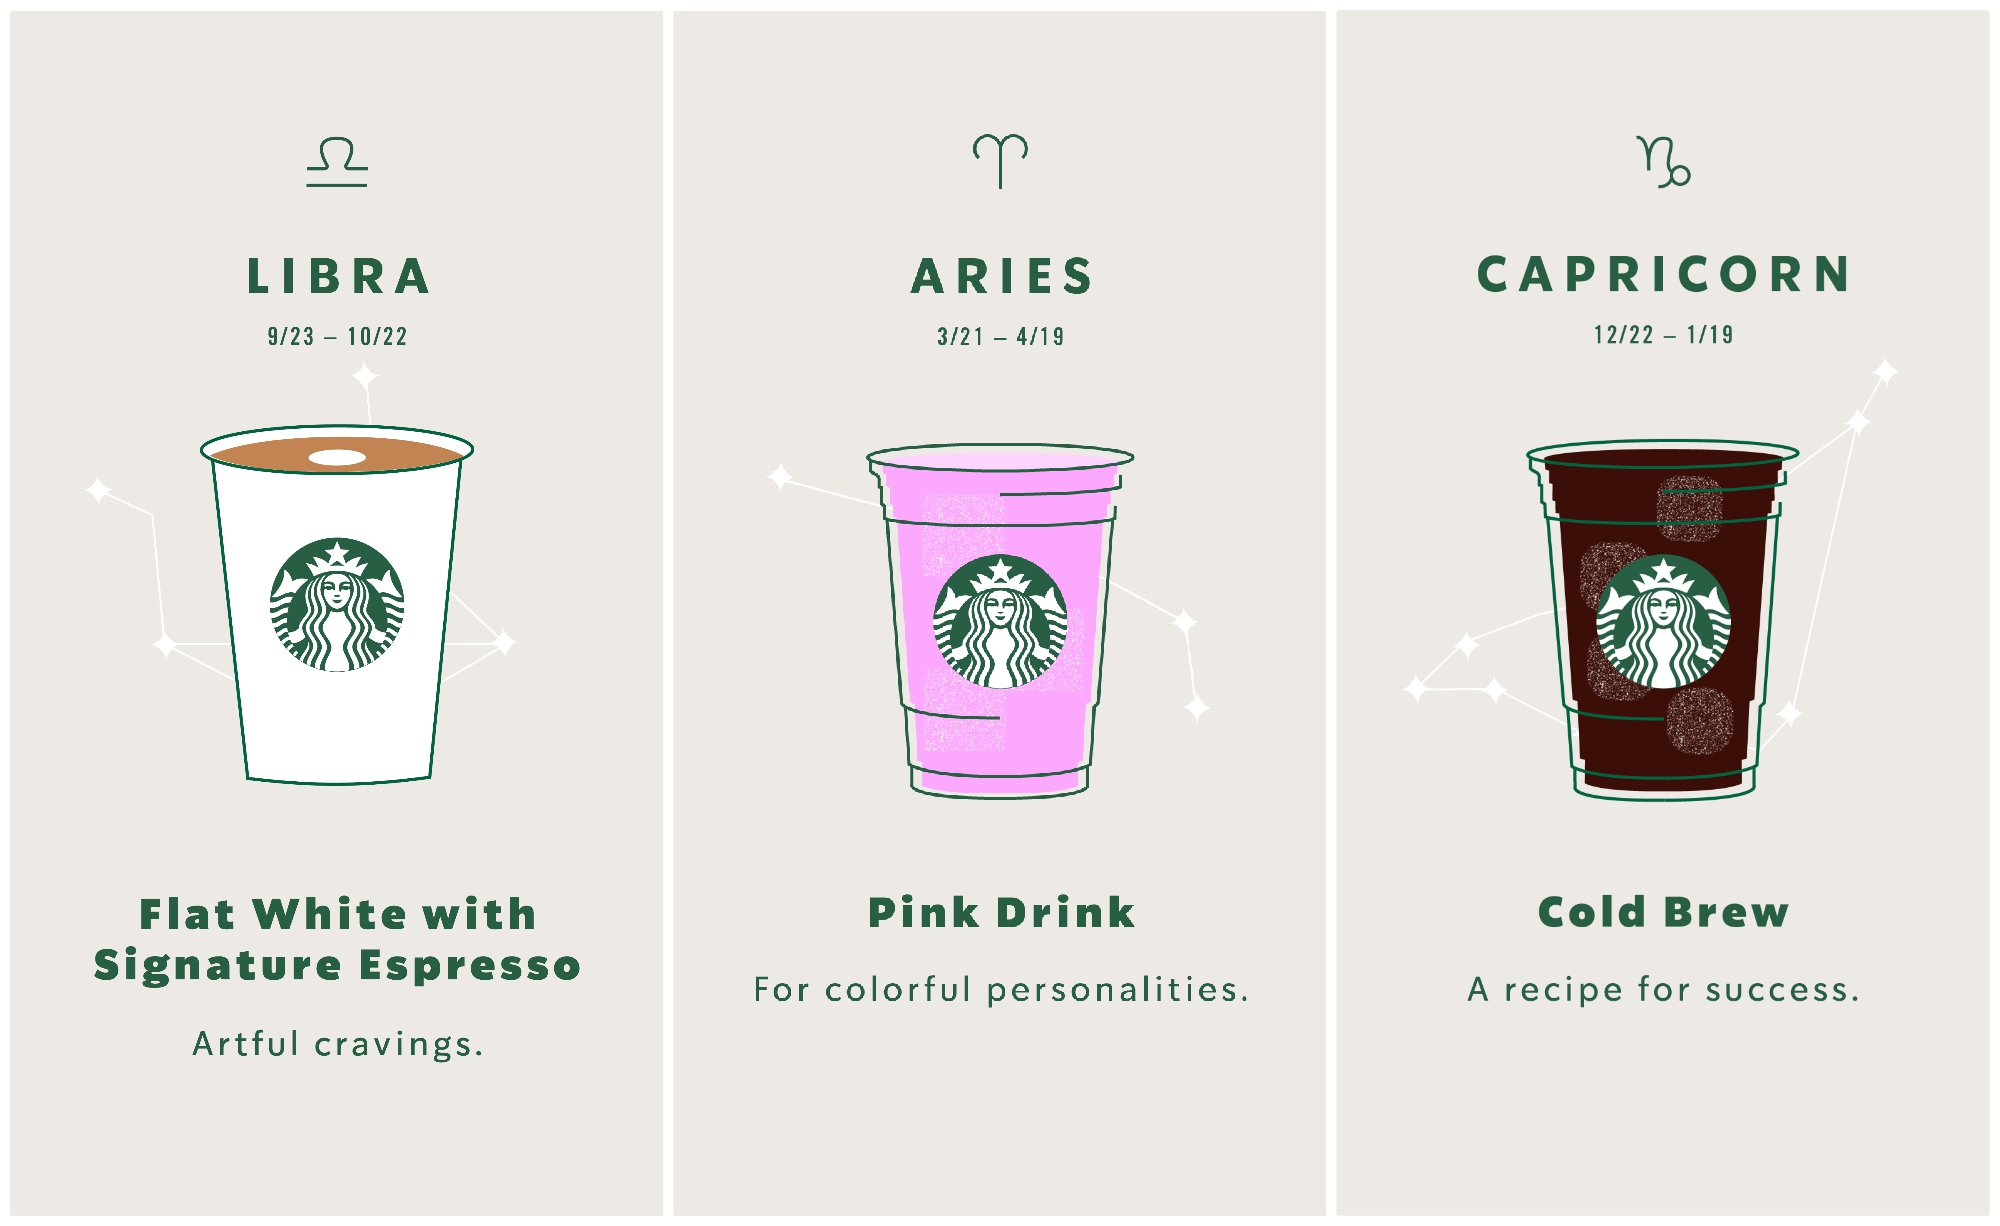 Starbucks created a drink order for every zodiac sign, and this is extremely #onbrand for millennials